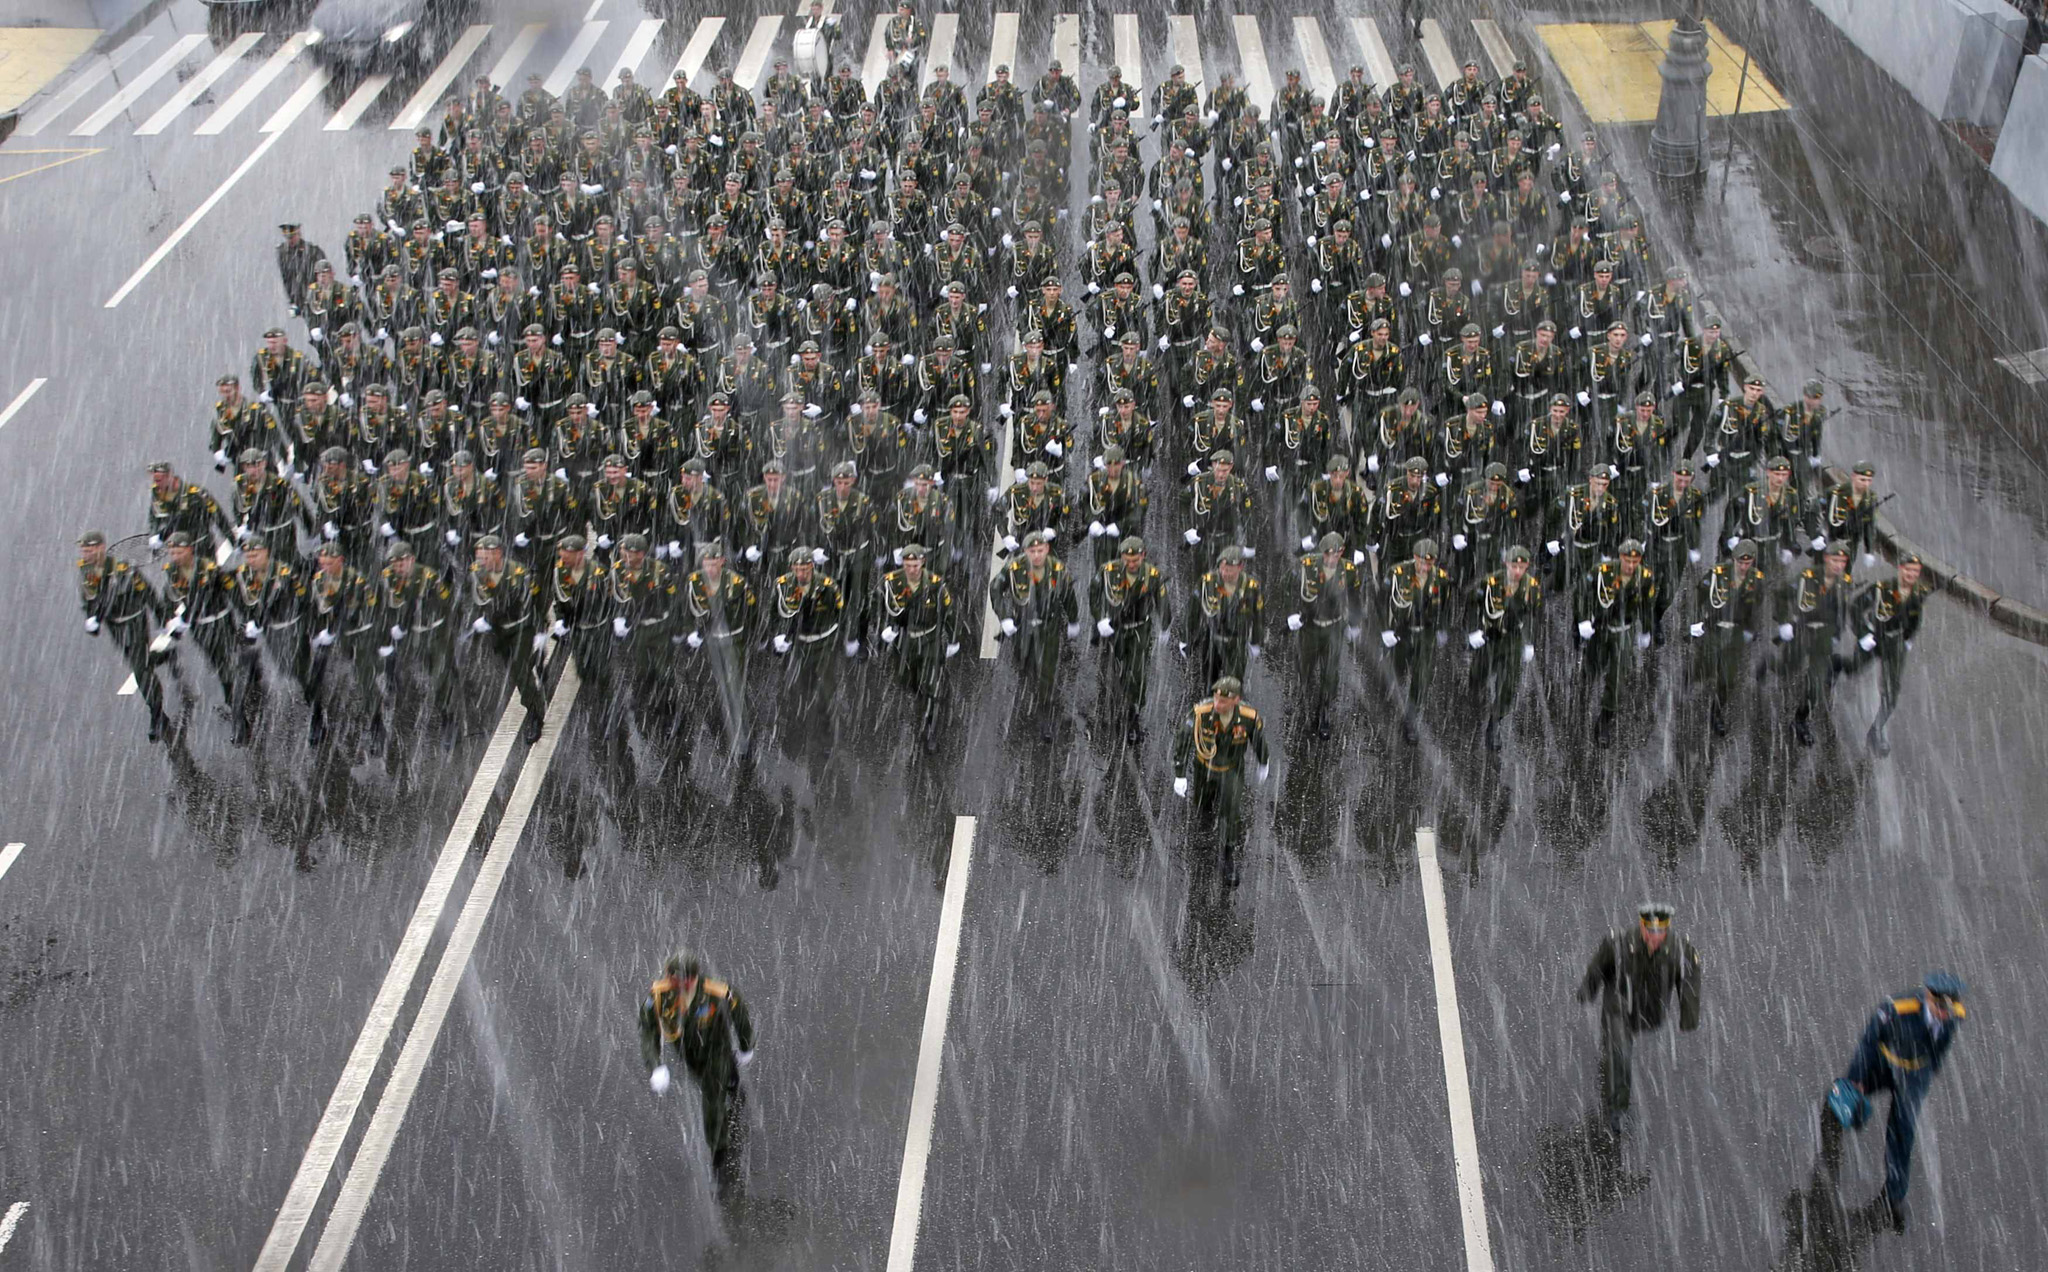 Russian servicemen walk in formation as they take part in a rehearsal for the Victory Day military parade during a snowfall in central Moscow...Russian servicemen walk in formation as they take part in a rehearsal for the Victory Day military parade during a snowfall in central Moscow, May 7, 2014. Russia celebrates victory over Nazi Germany on May 9. REUTERS/Artur Bainozarov (RUSSIA -